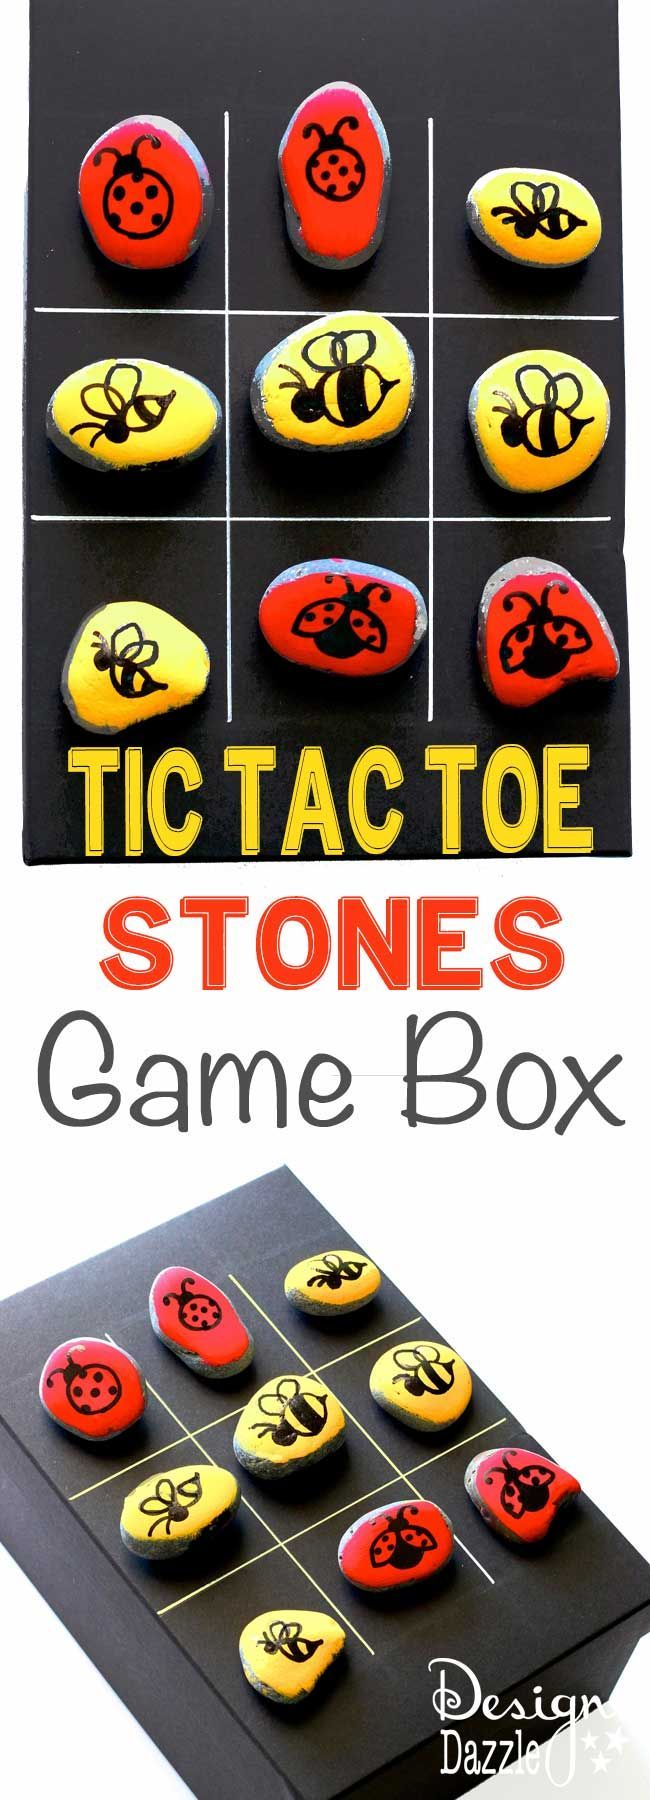 Tic Tac Toe Stones Game Box will keep the kids entertained! Paint your own stones and create your very own Tic Tac Toe game. | MichaelsMakers Design Dazzle